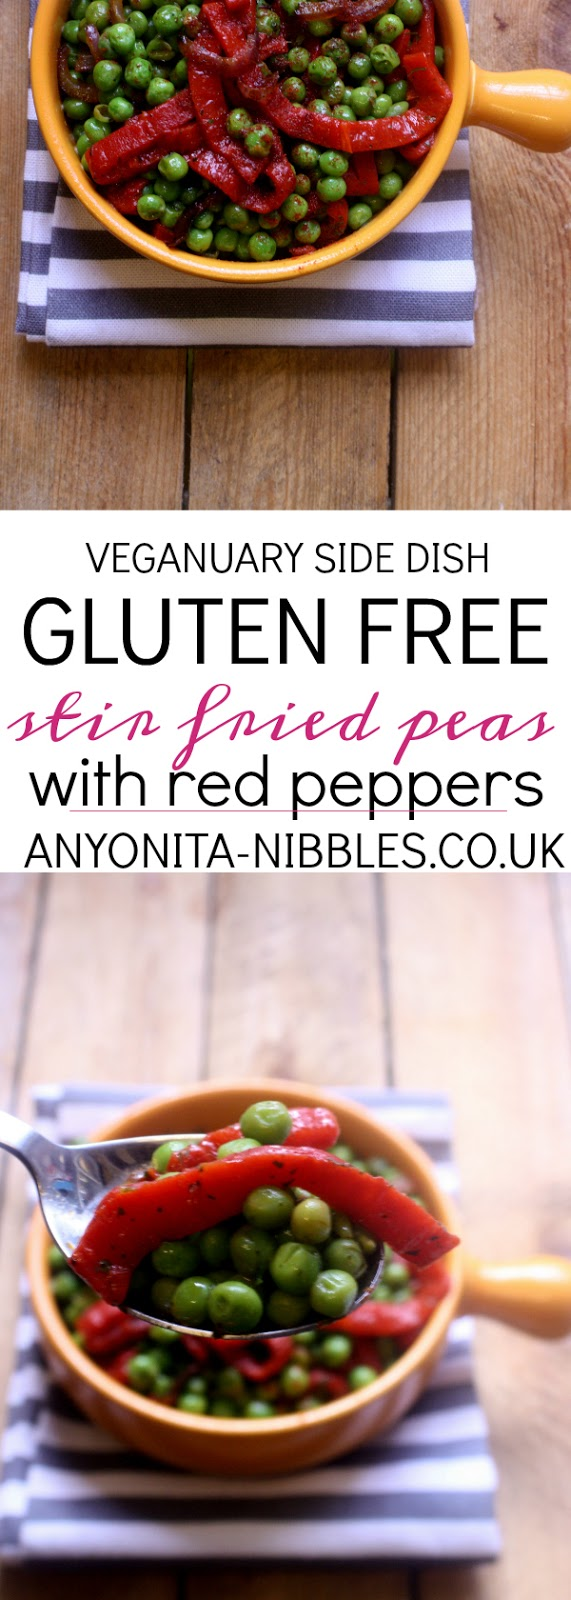 Vegan side dish of gluten-free stir-fried peas with red peppers